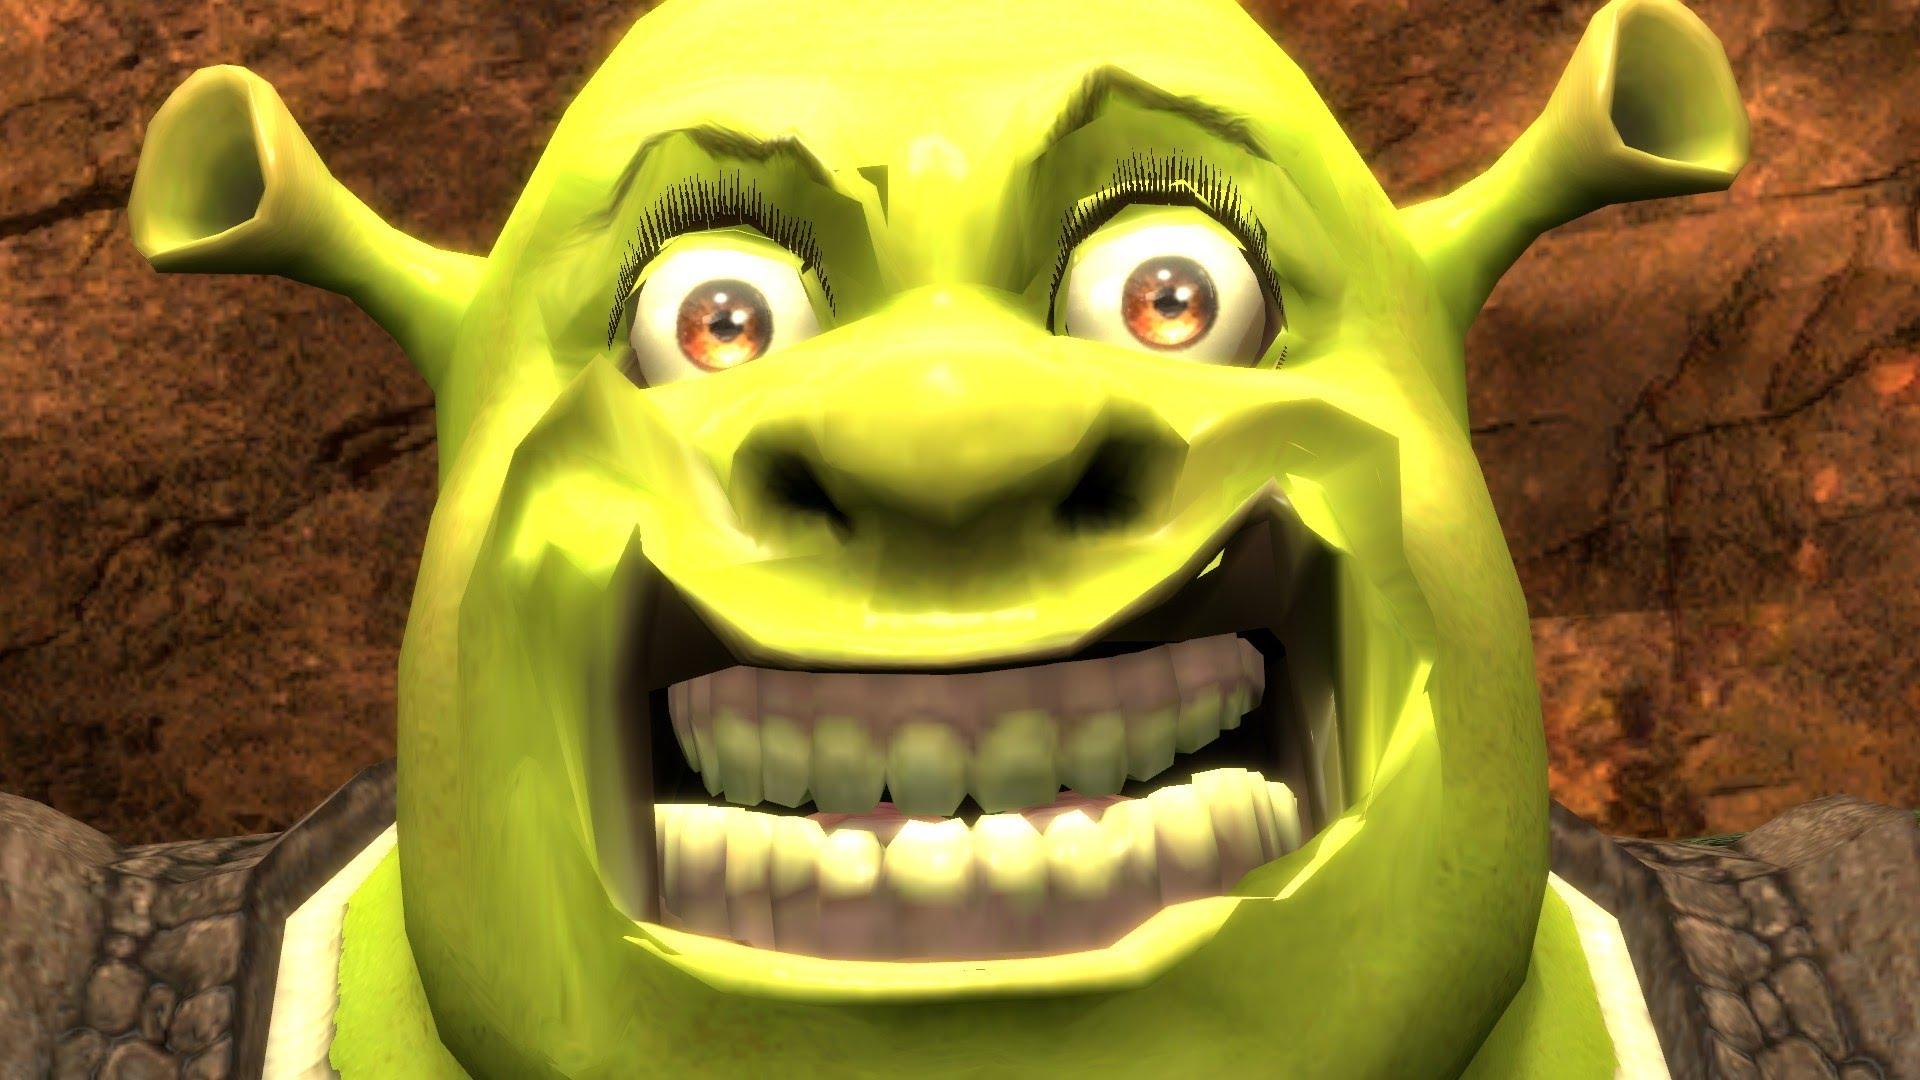 GET SHREK'D - YouTube